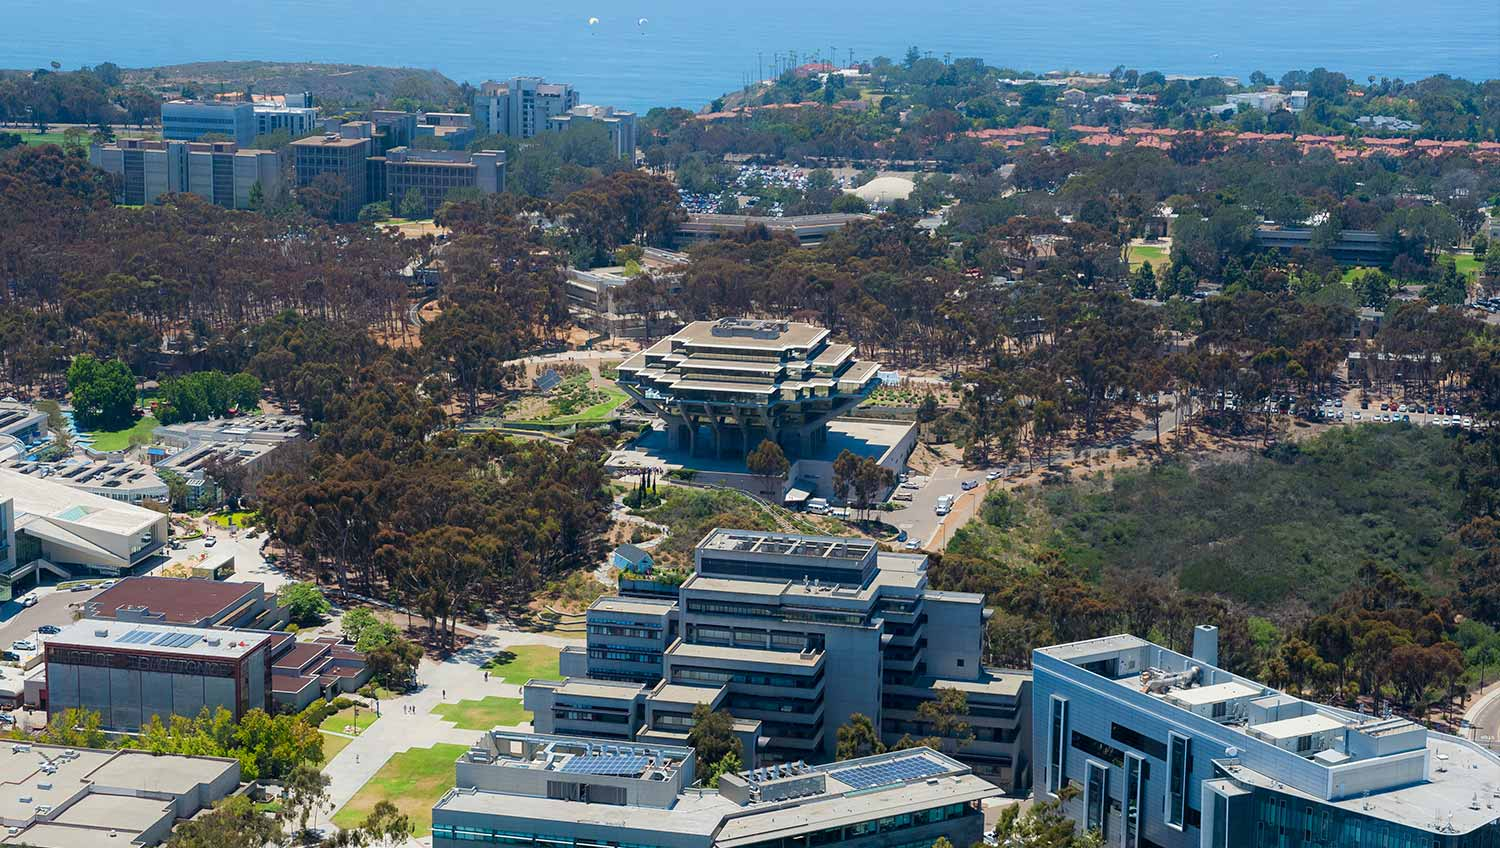 Aerial view over the campus of UC San Diego